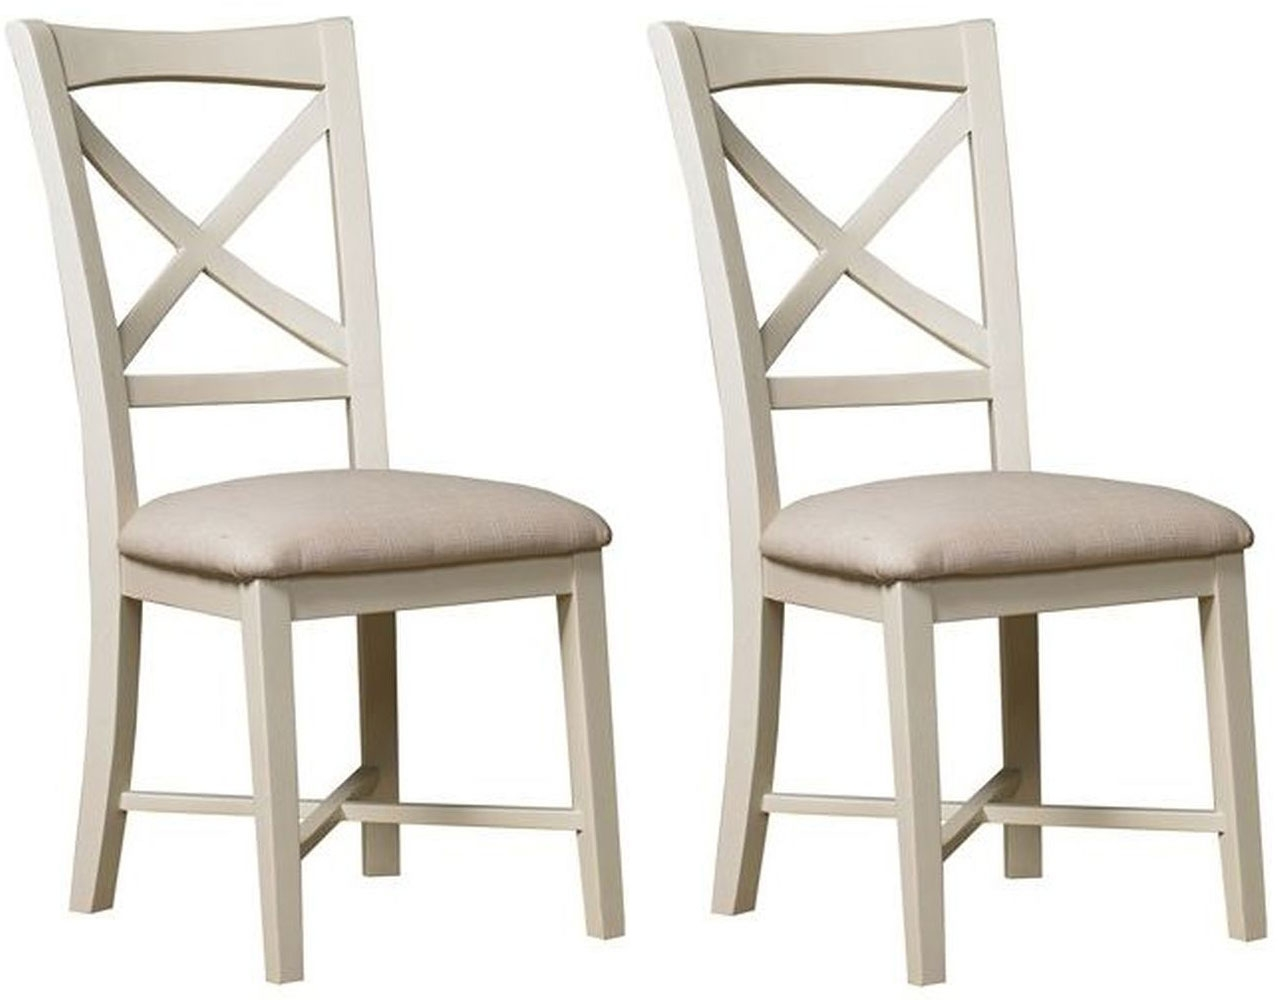 Mark Webster Chiswick Painted Dining Chair - Single Cross Back Fabric Seat (Pair)